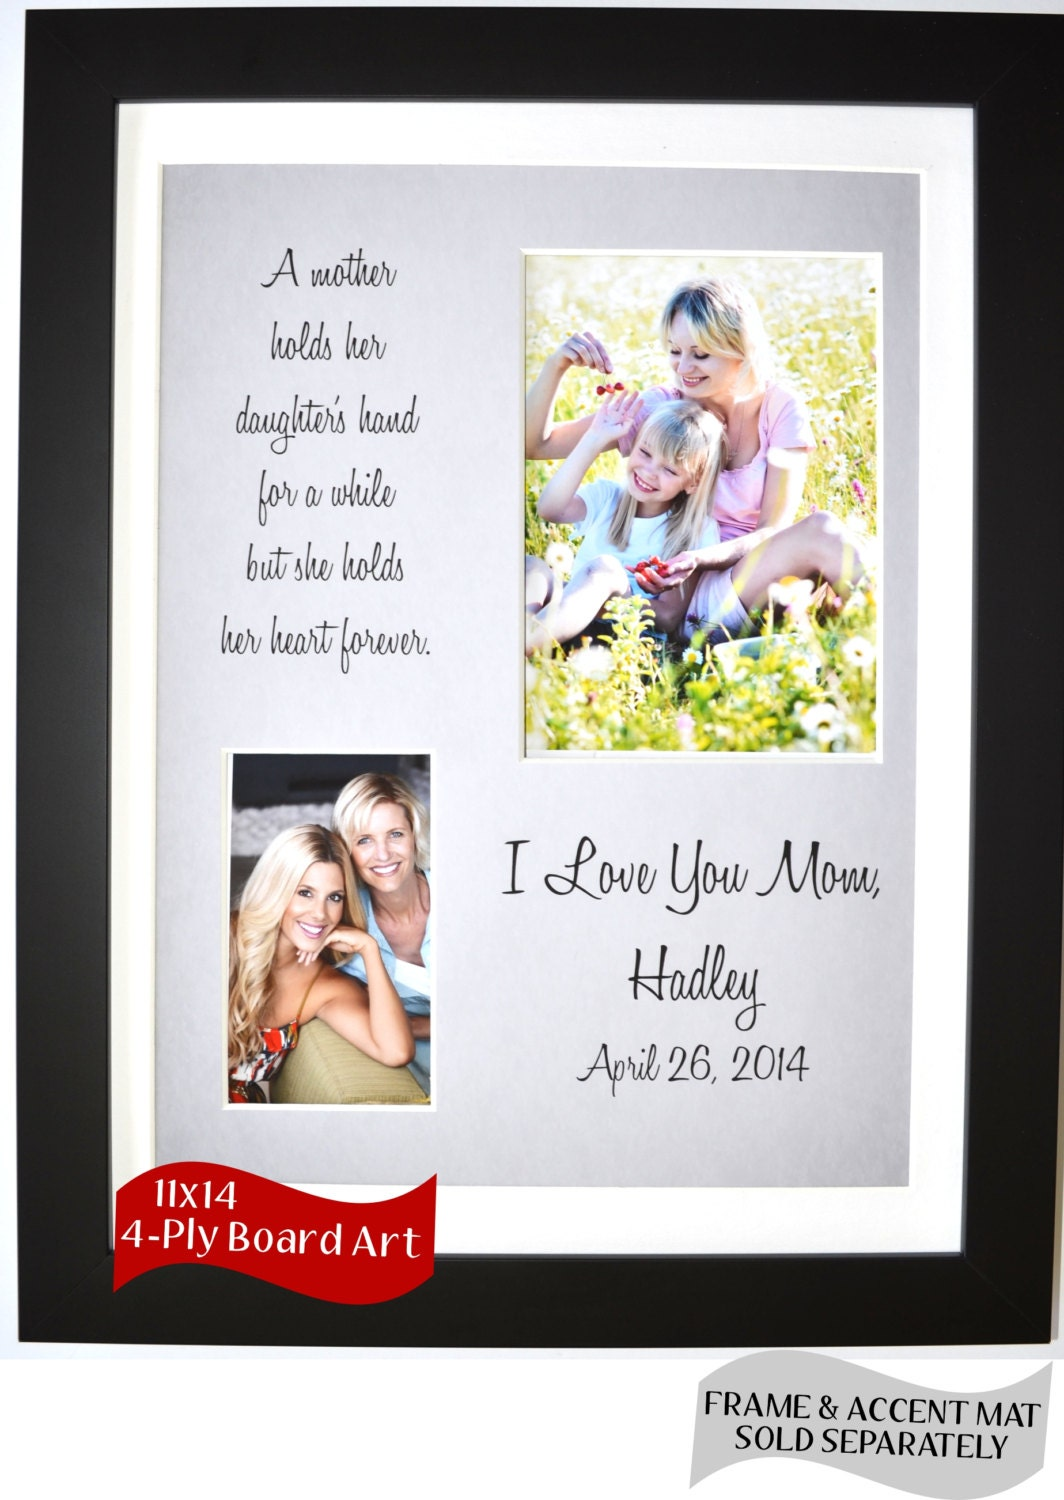 Wedding Thank You Gift For Mom : Wedding thank you gift personalized gift for mom custom by Picmats